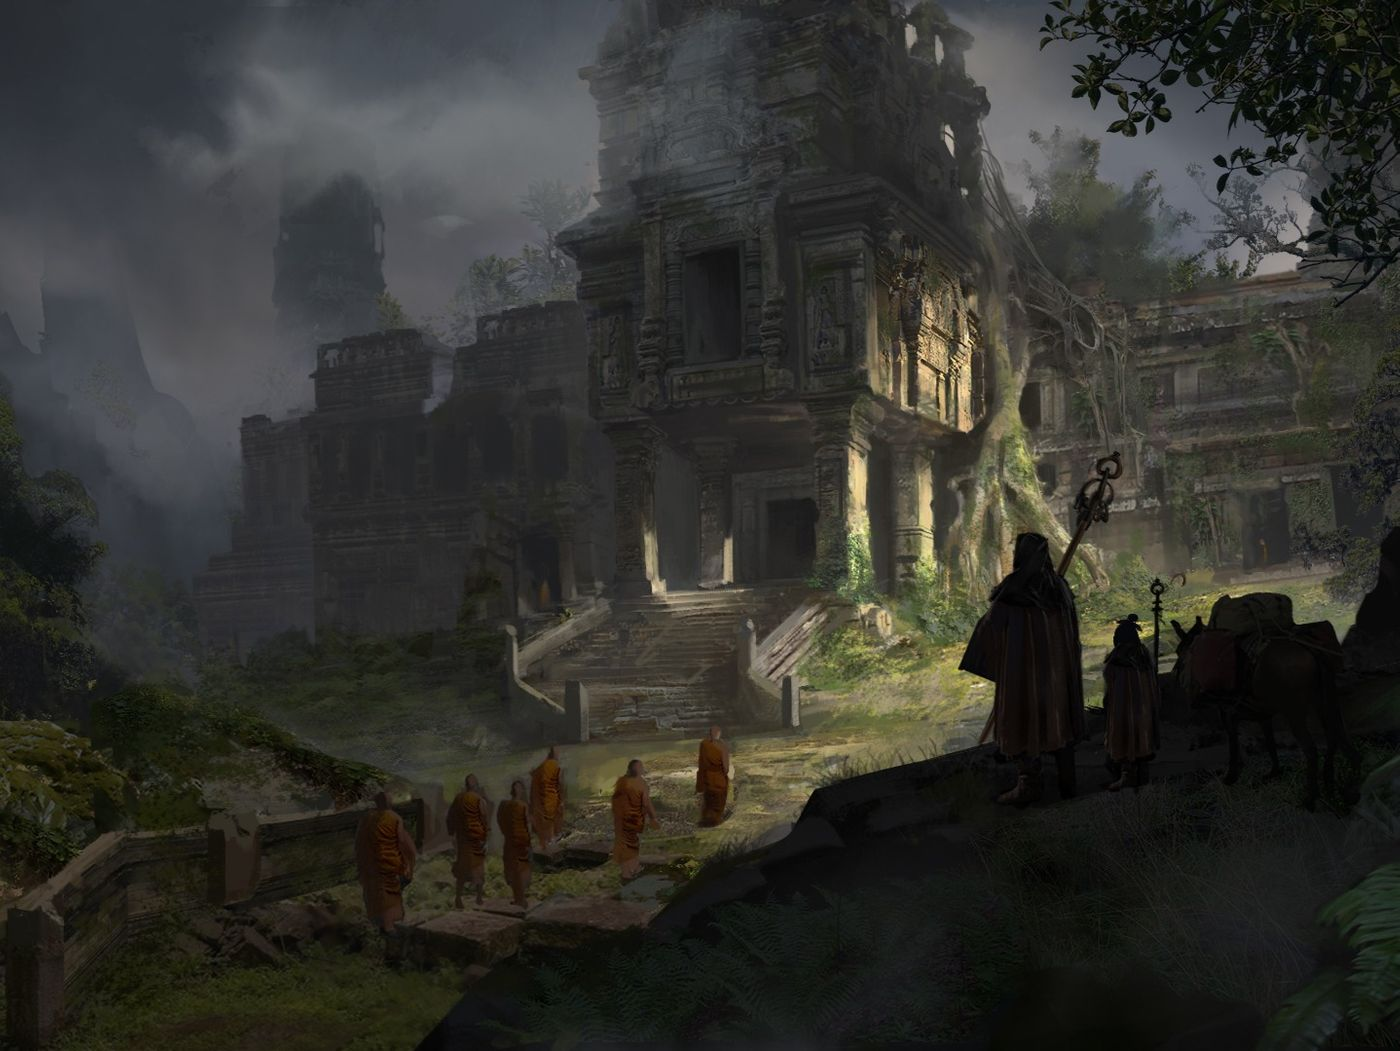 Mysterious Temple in Jungle